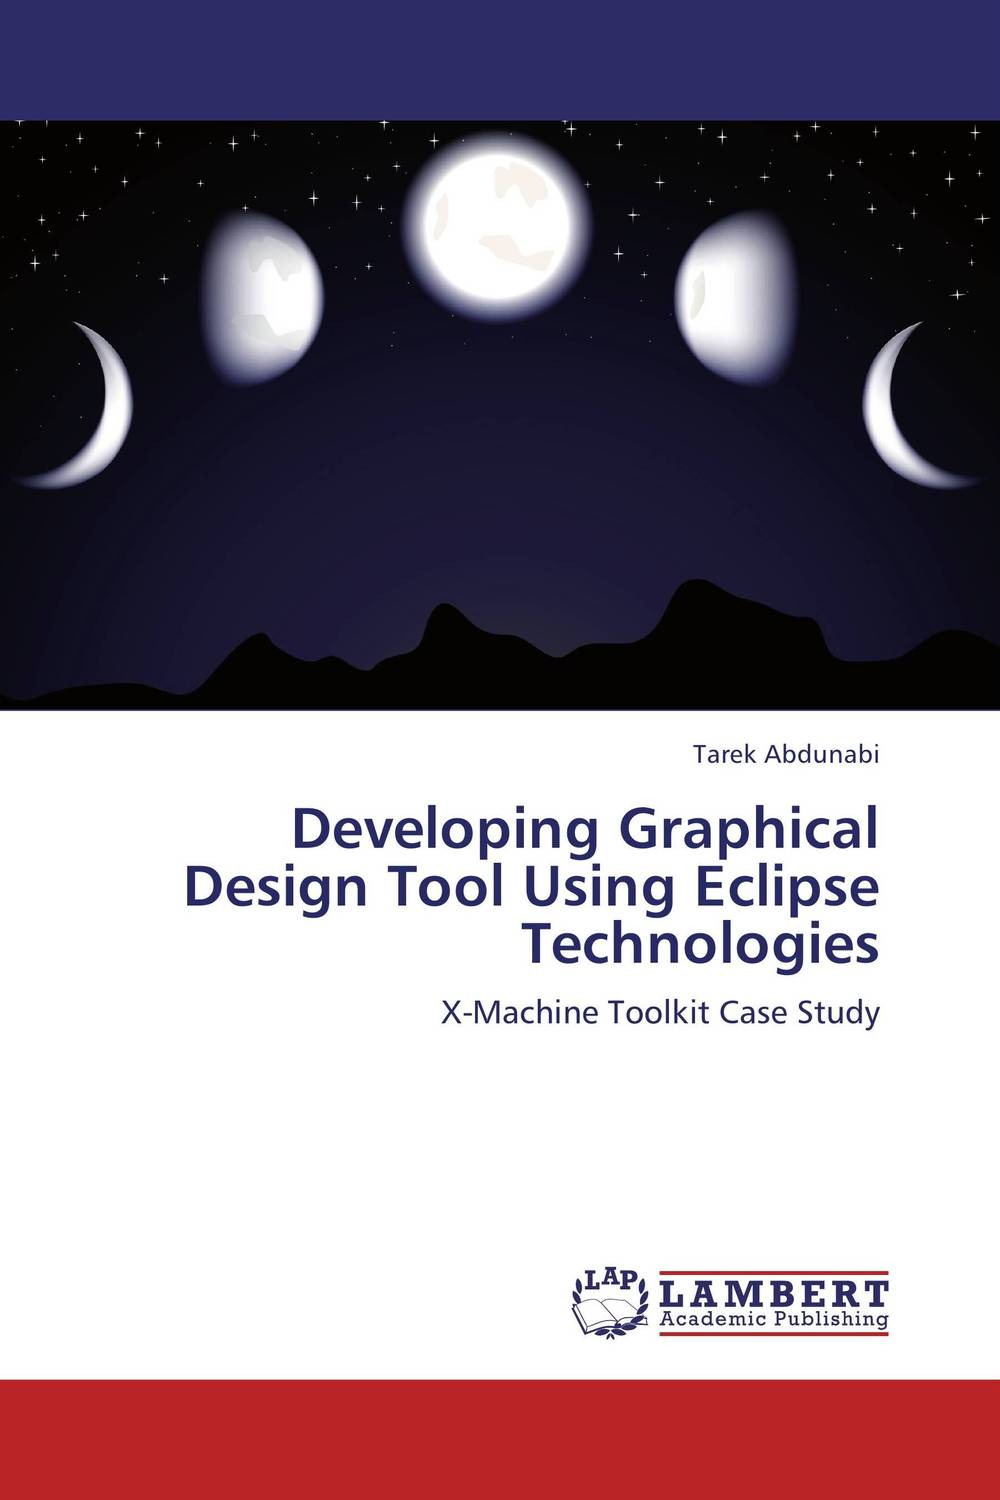 Developing Graphical Design Tool Using Eclipse Technologies